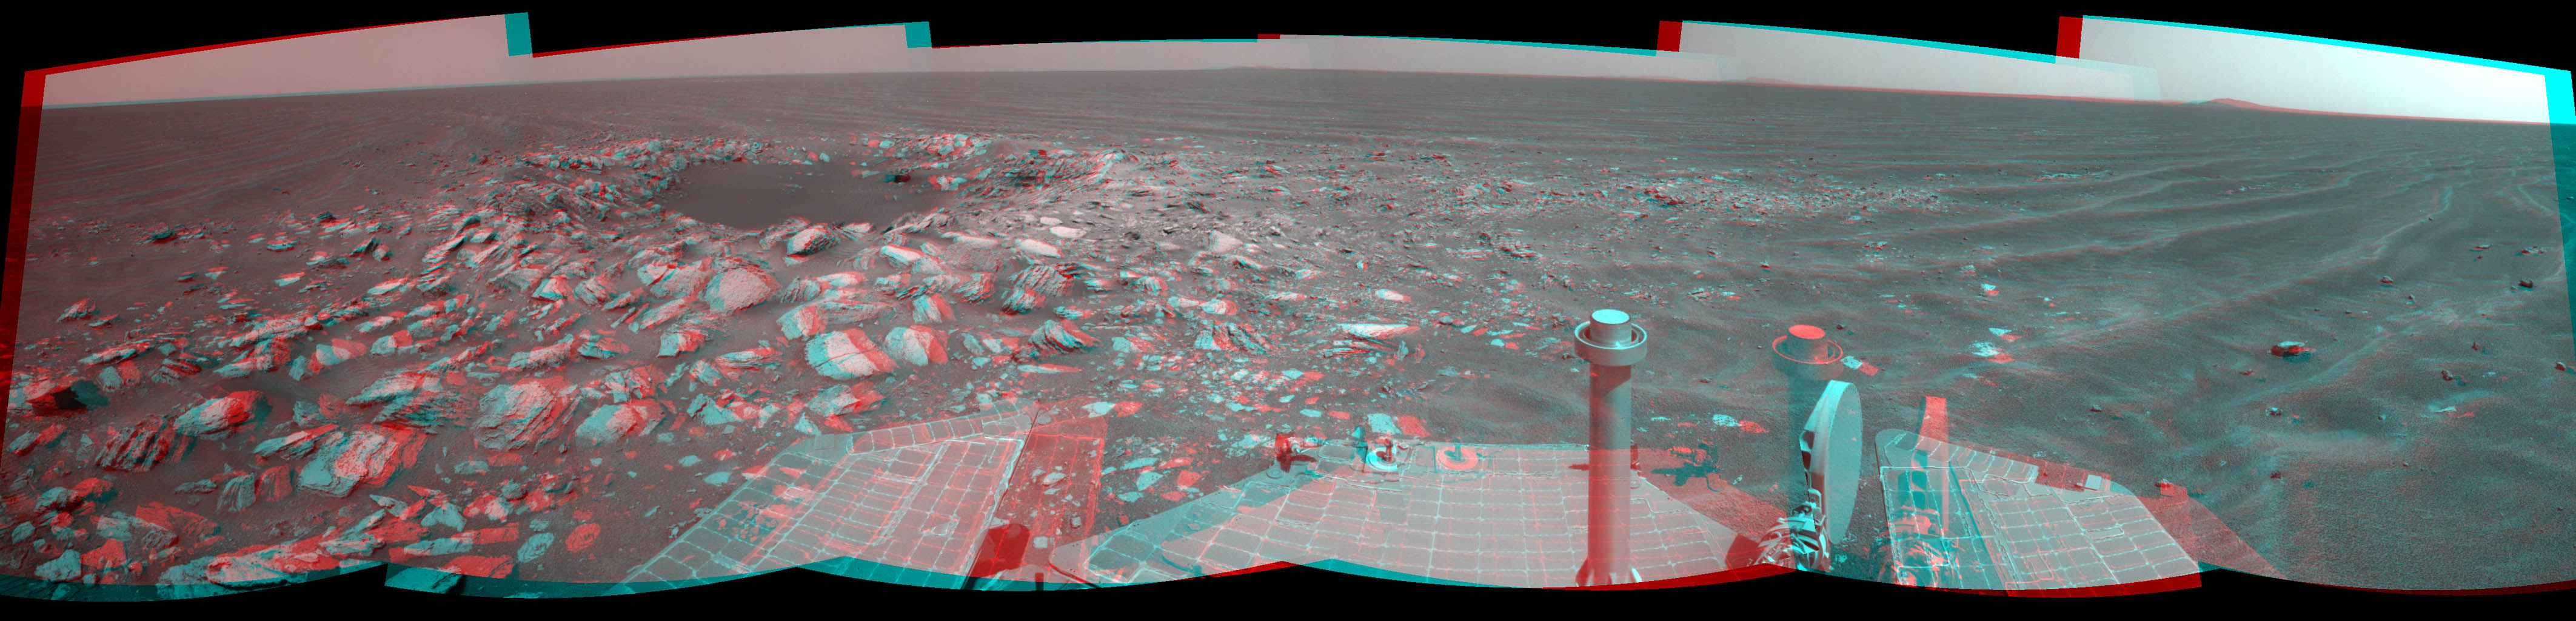 NASA's Mars Exploration Rover Opportunity captured this stereo view of a wee crater, informally named 'Skylab,' along the rover's route. This crater was likely formed within the past 100,000 years. 3-D glasses are necessary to view this image.